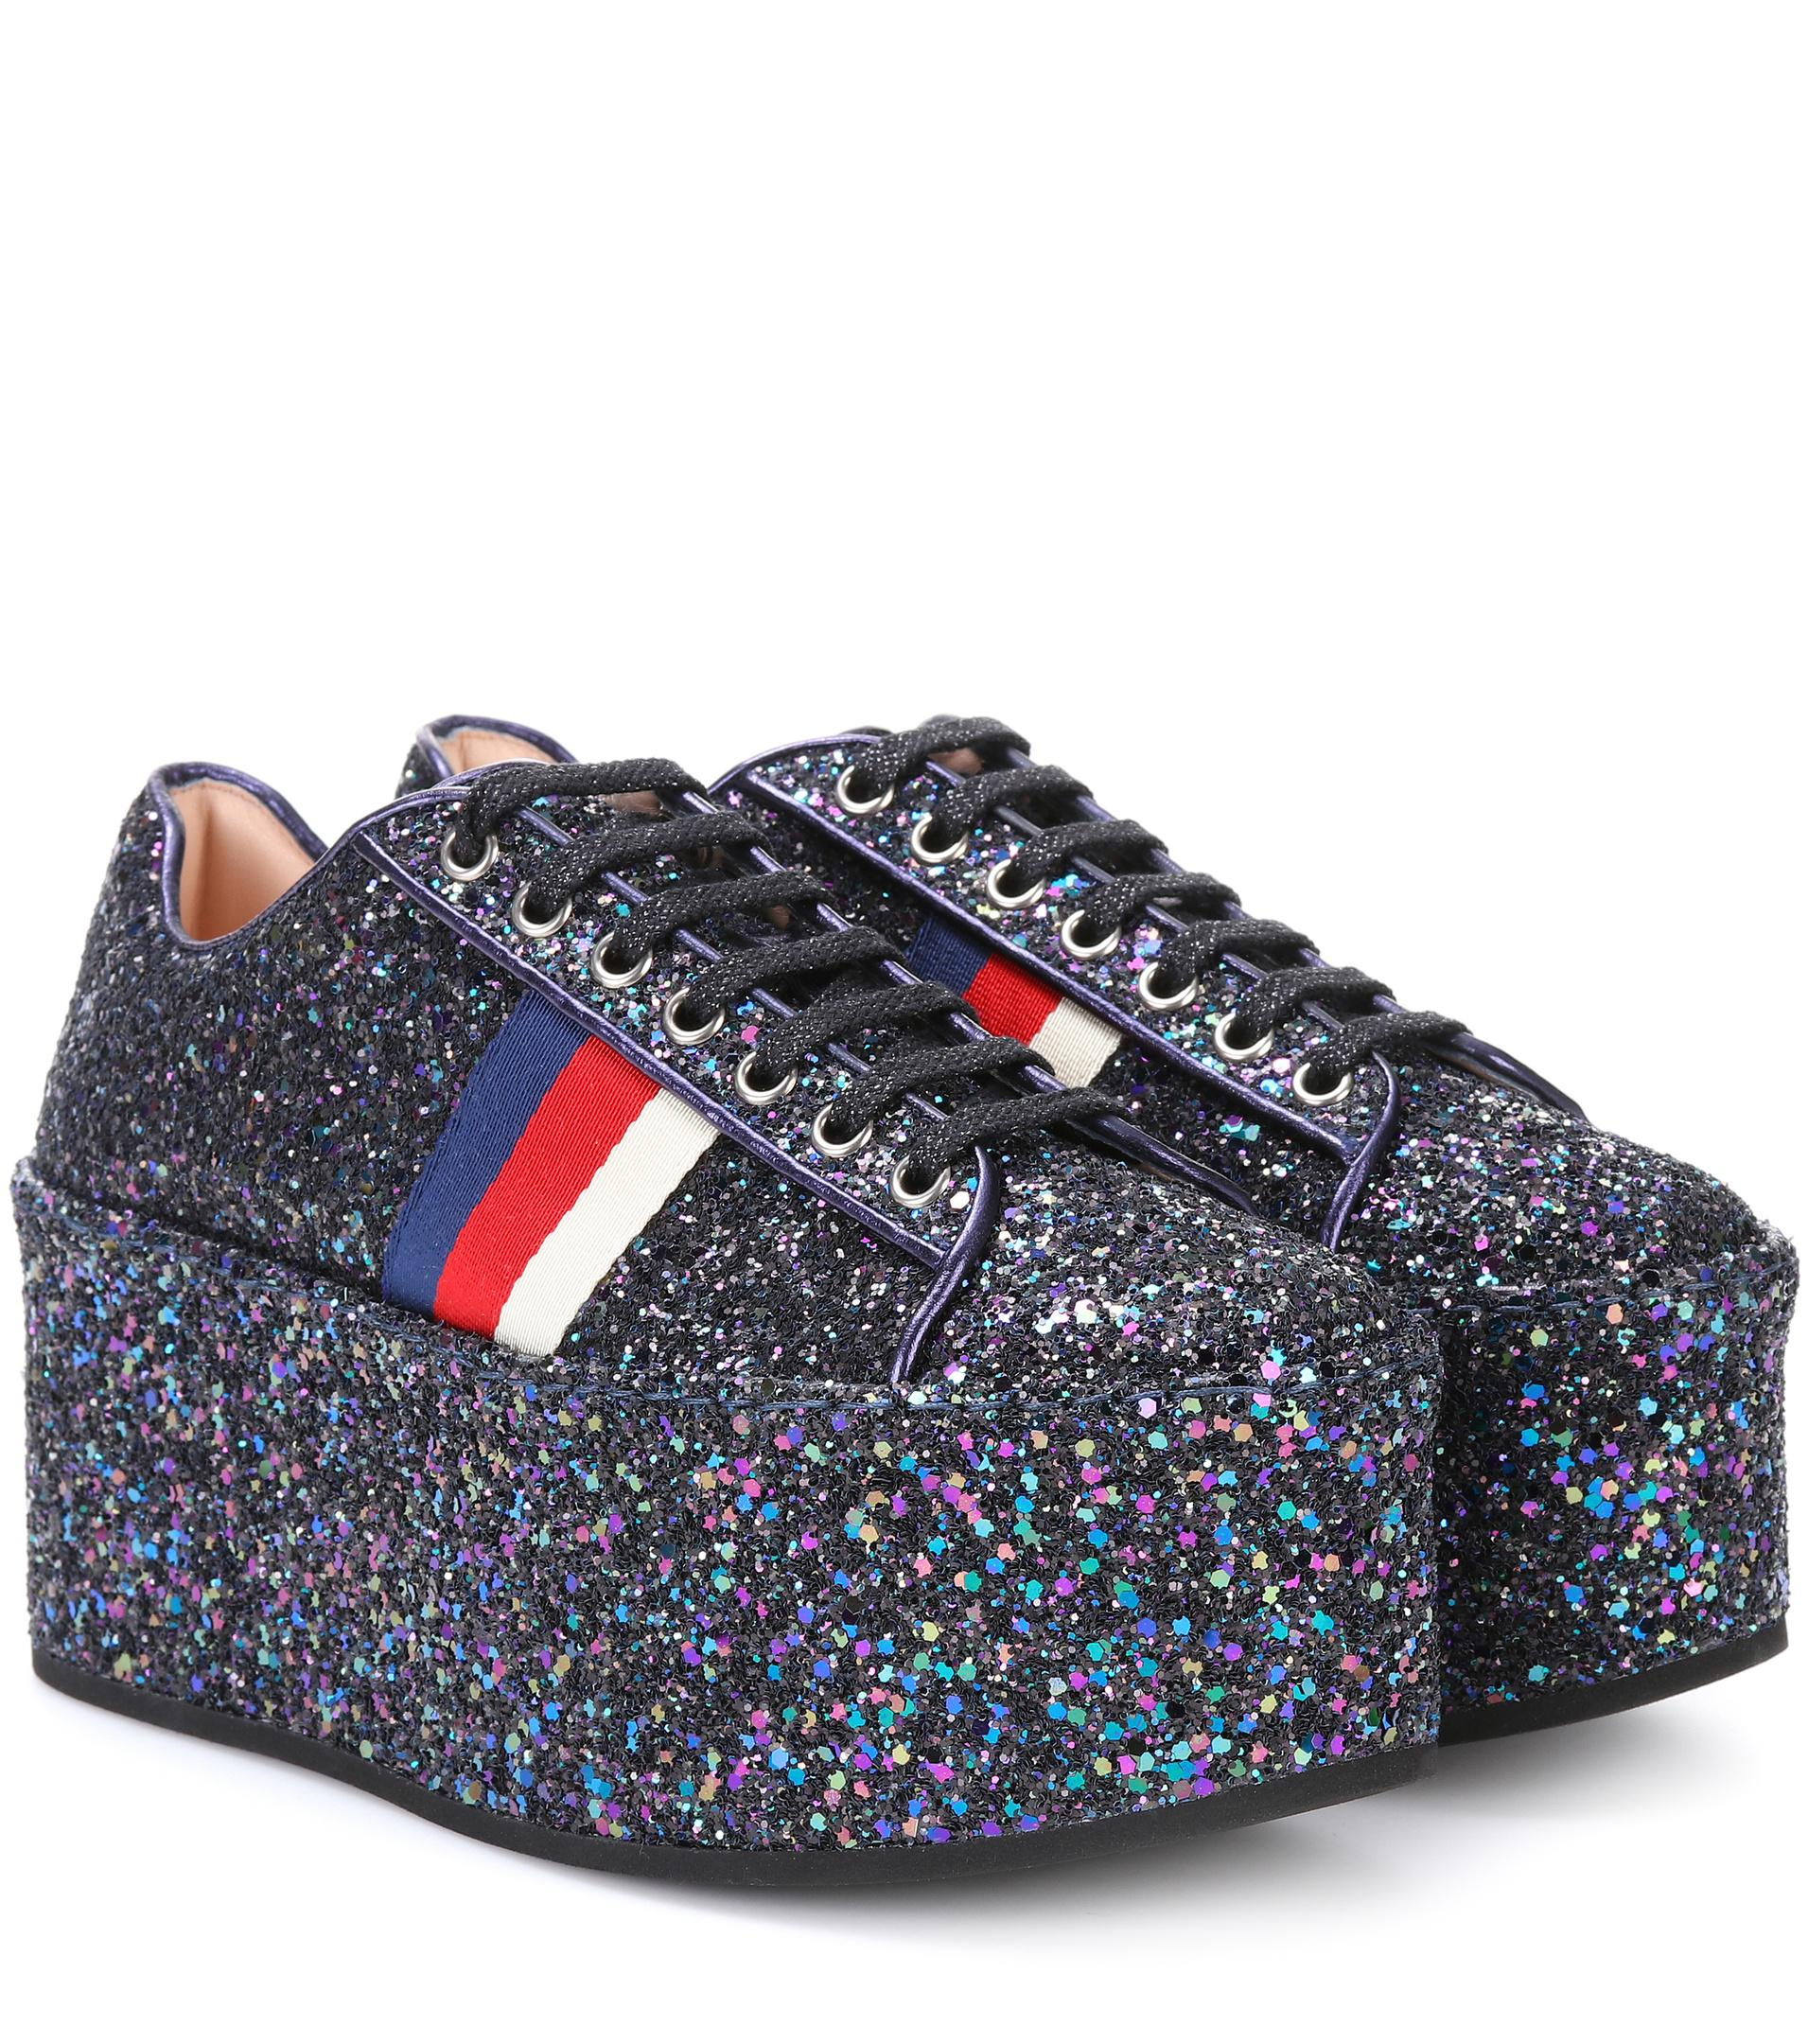 705da33758154 Gallery. Previously sold at  Mytheresa · Women s Platform Sneakers Women s  Gucci ...